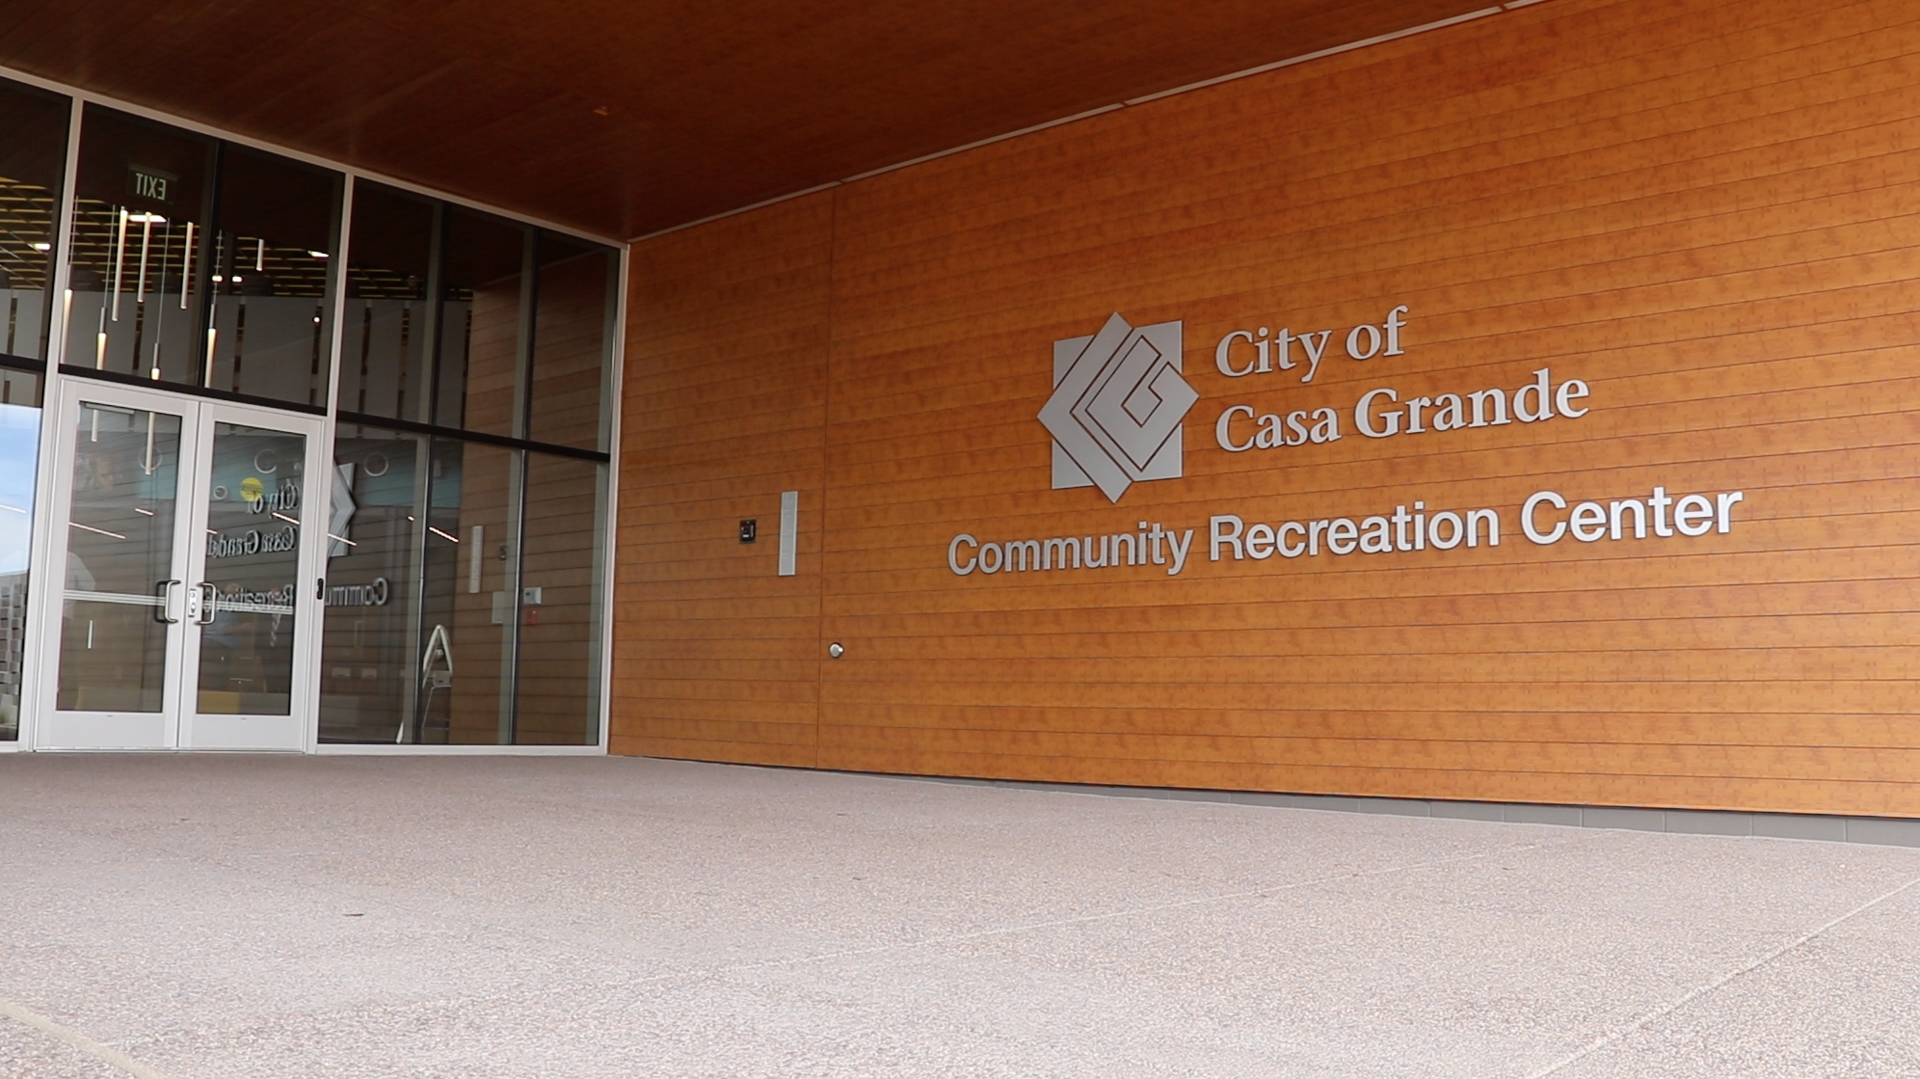 The front entrance of the Community Recreation Center